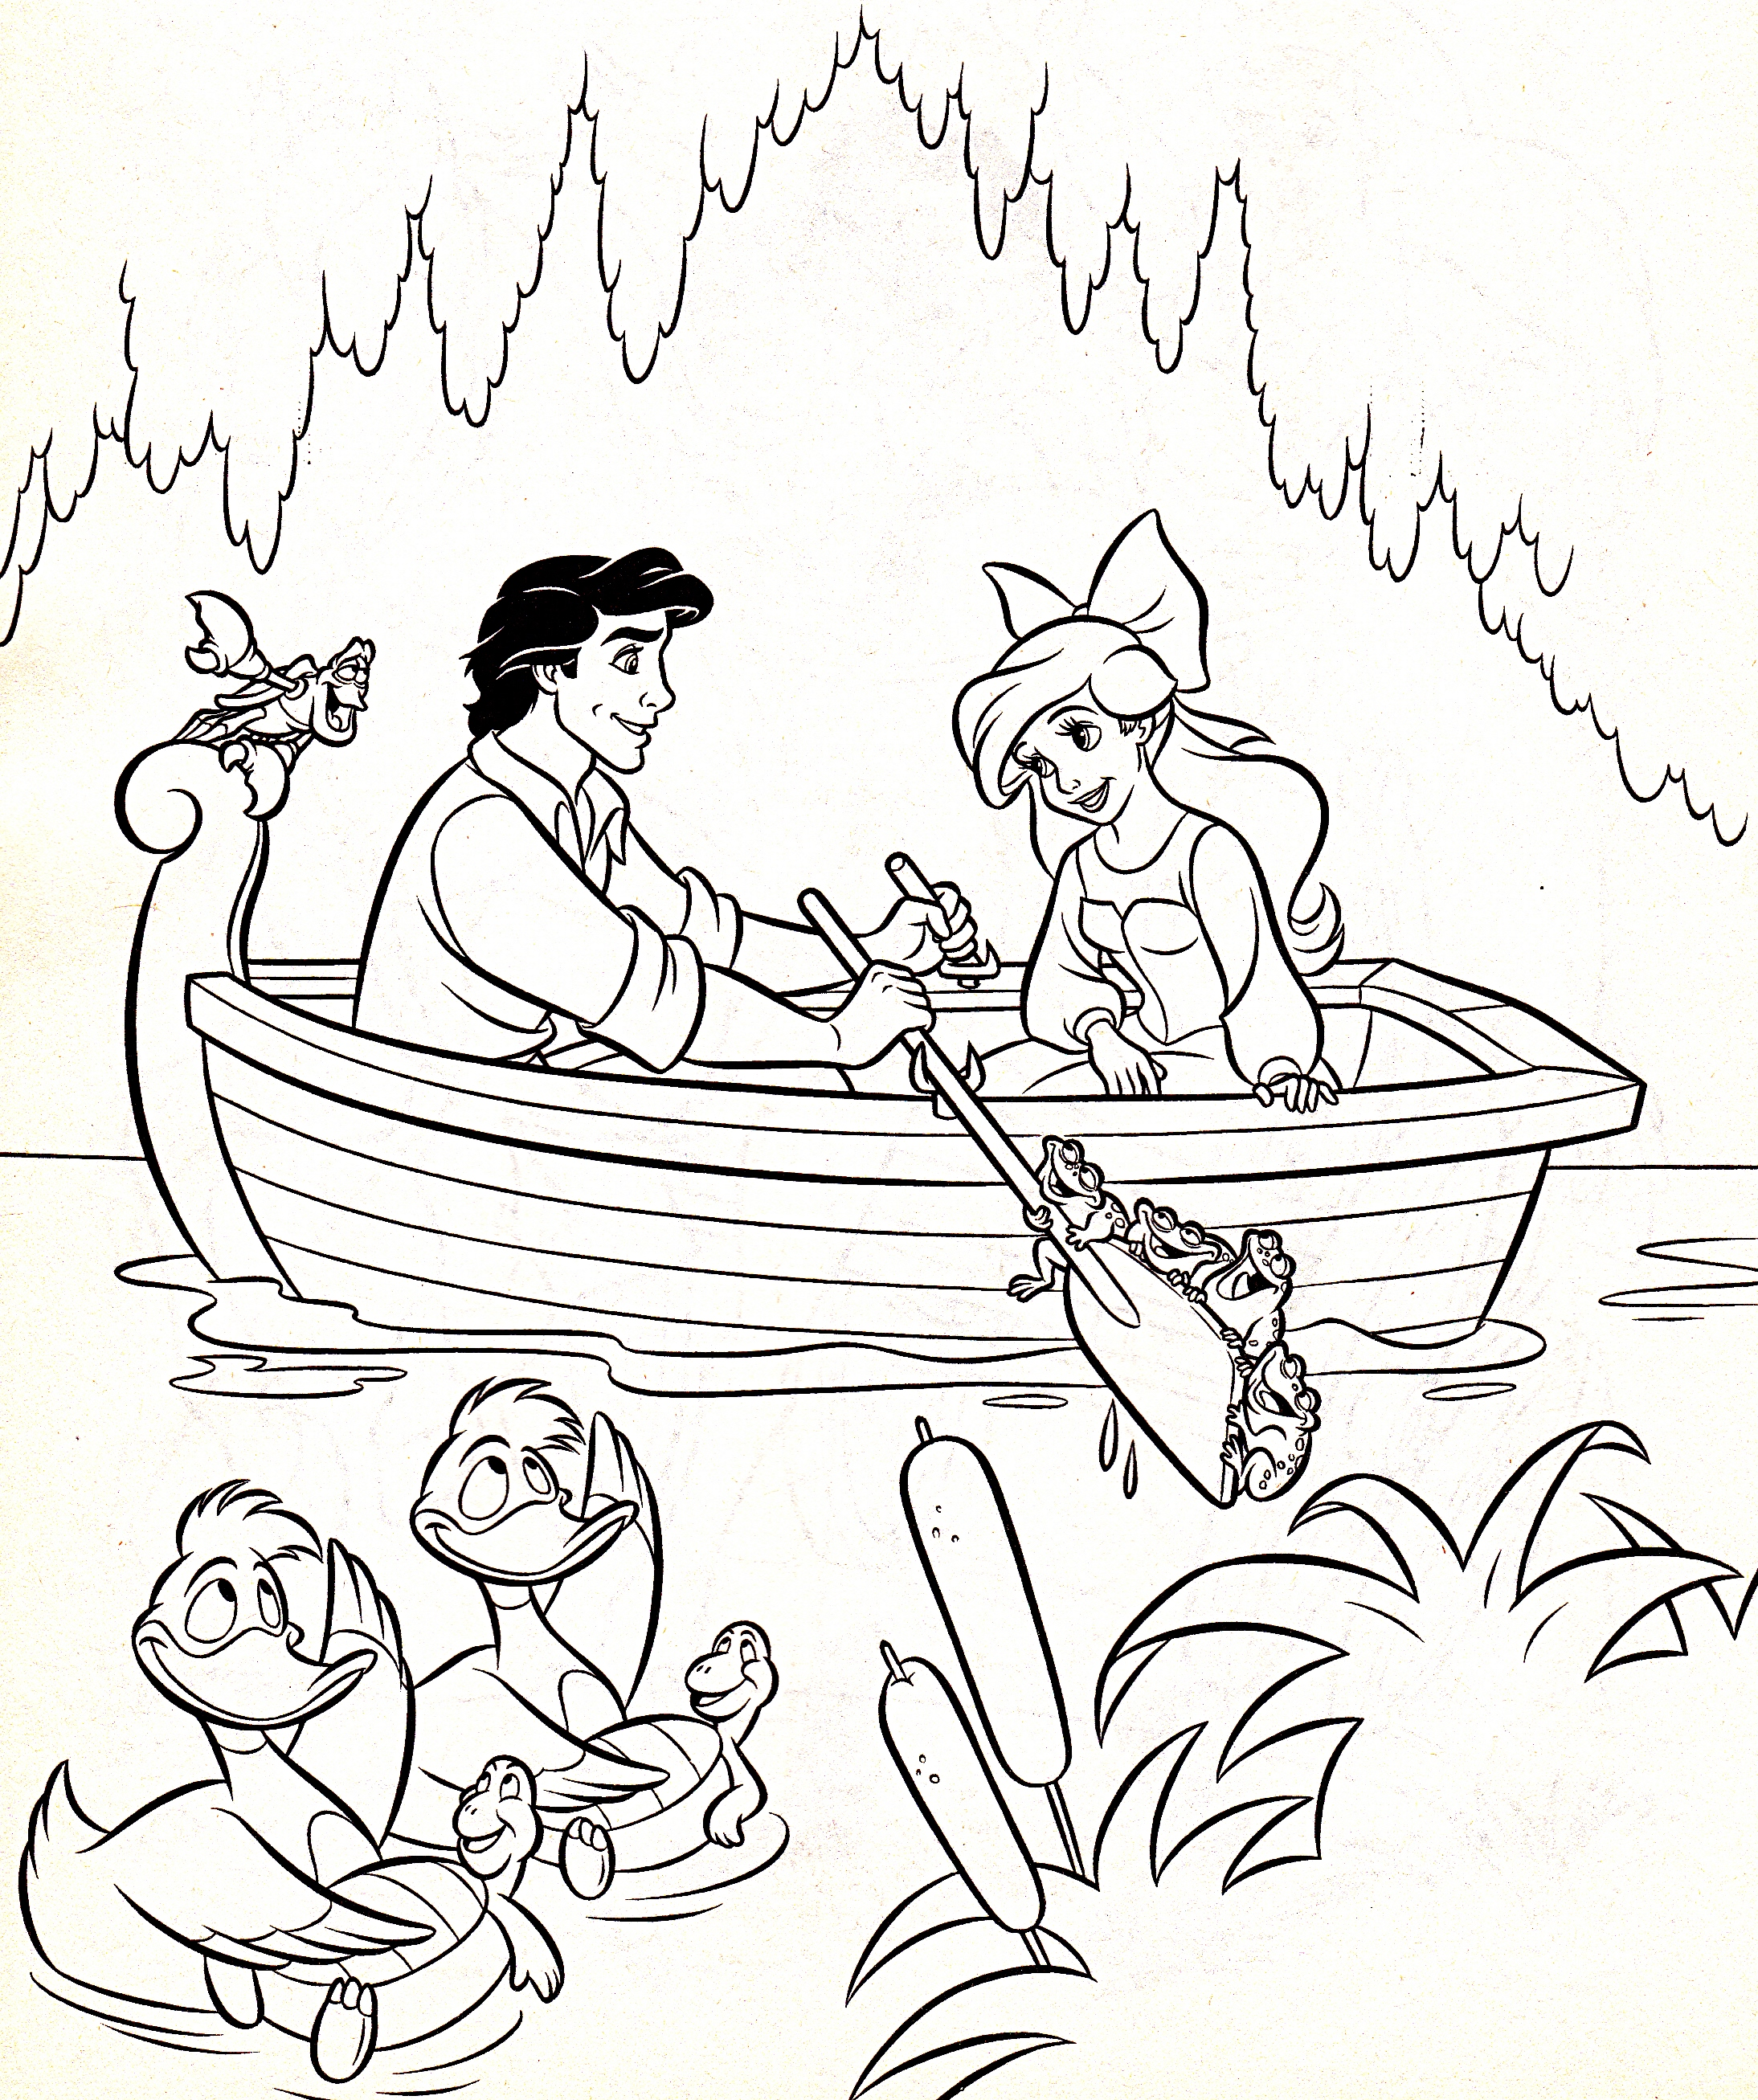 ariel disney coloring pages - photo#50